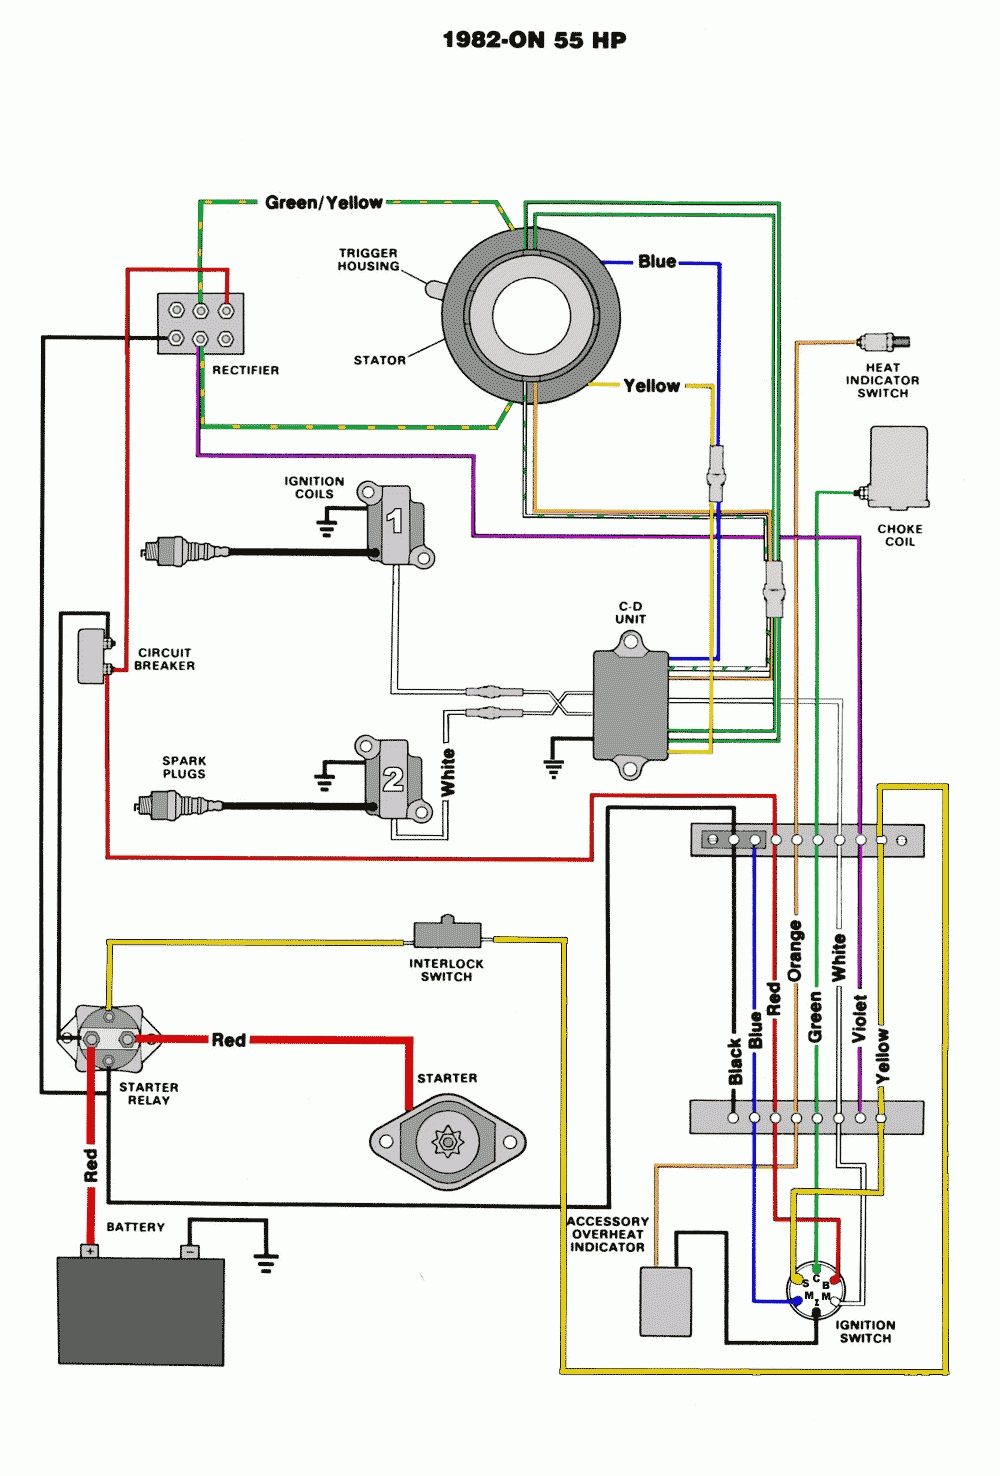 50 Hp Johnson Wiring Diagram